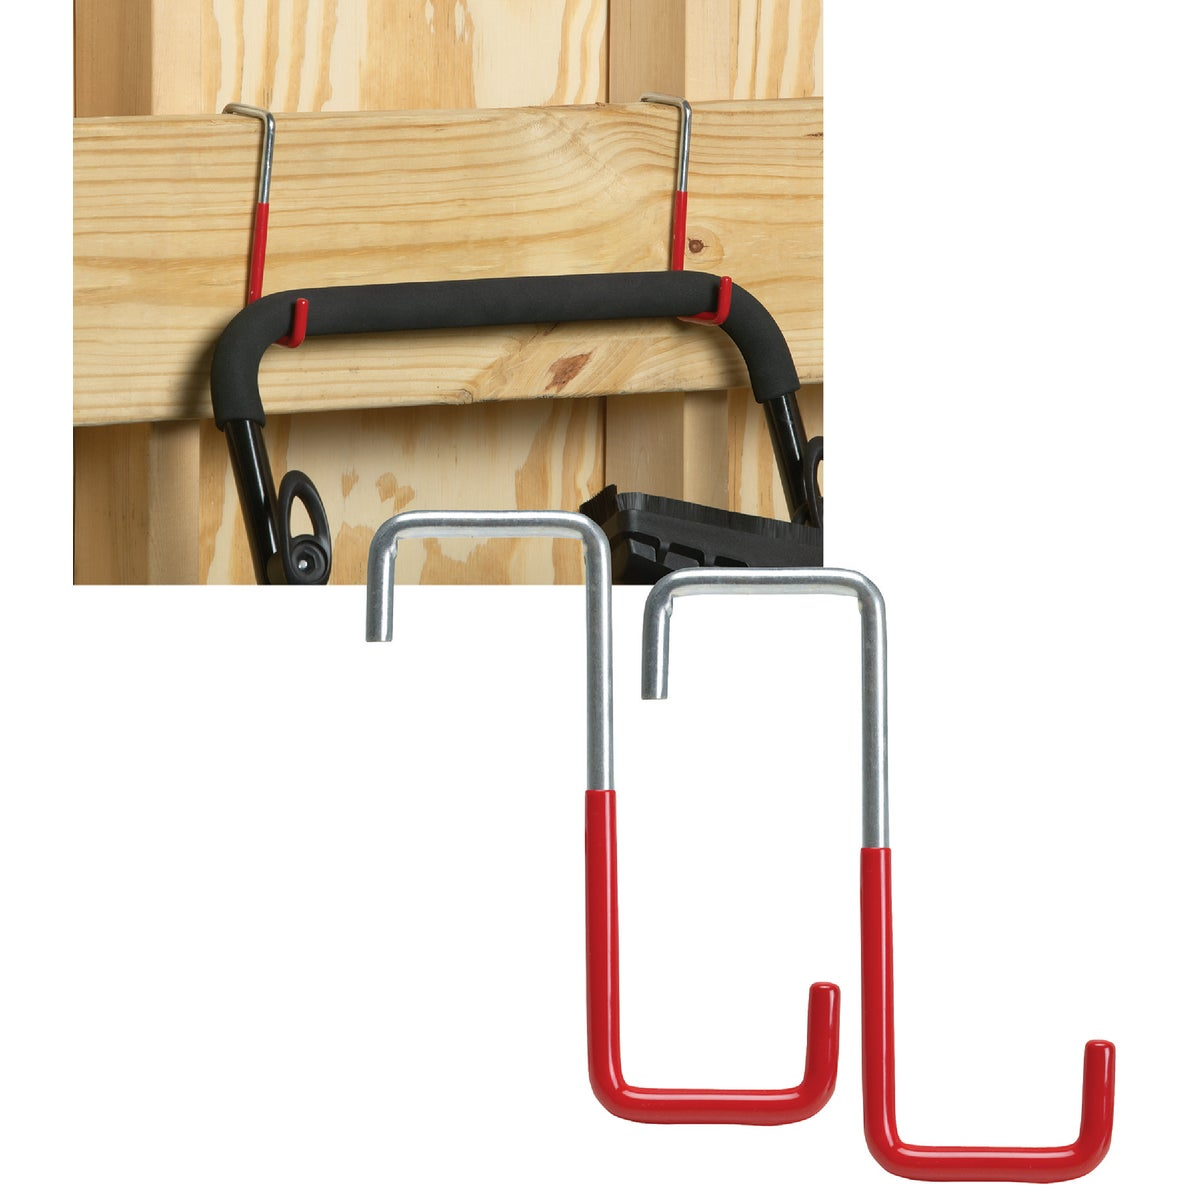 2PK RAFTER HOOK - 210781 by Do it Best